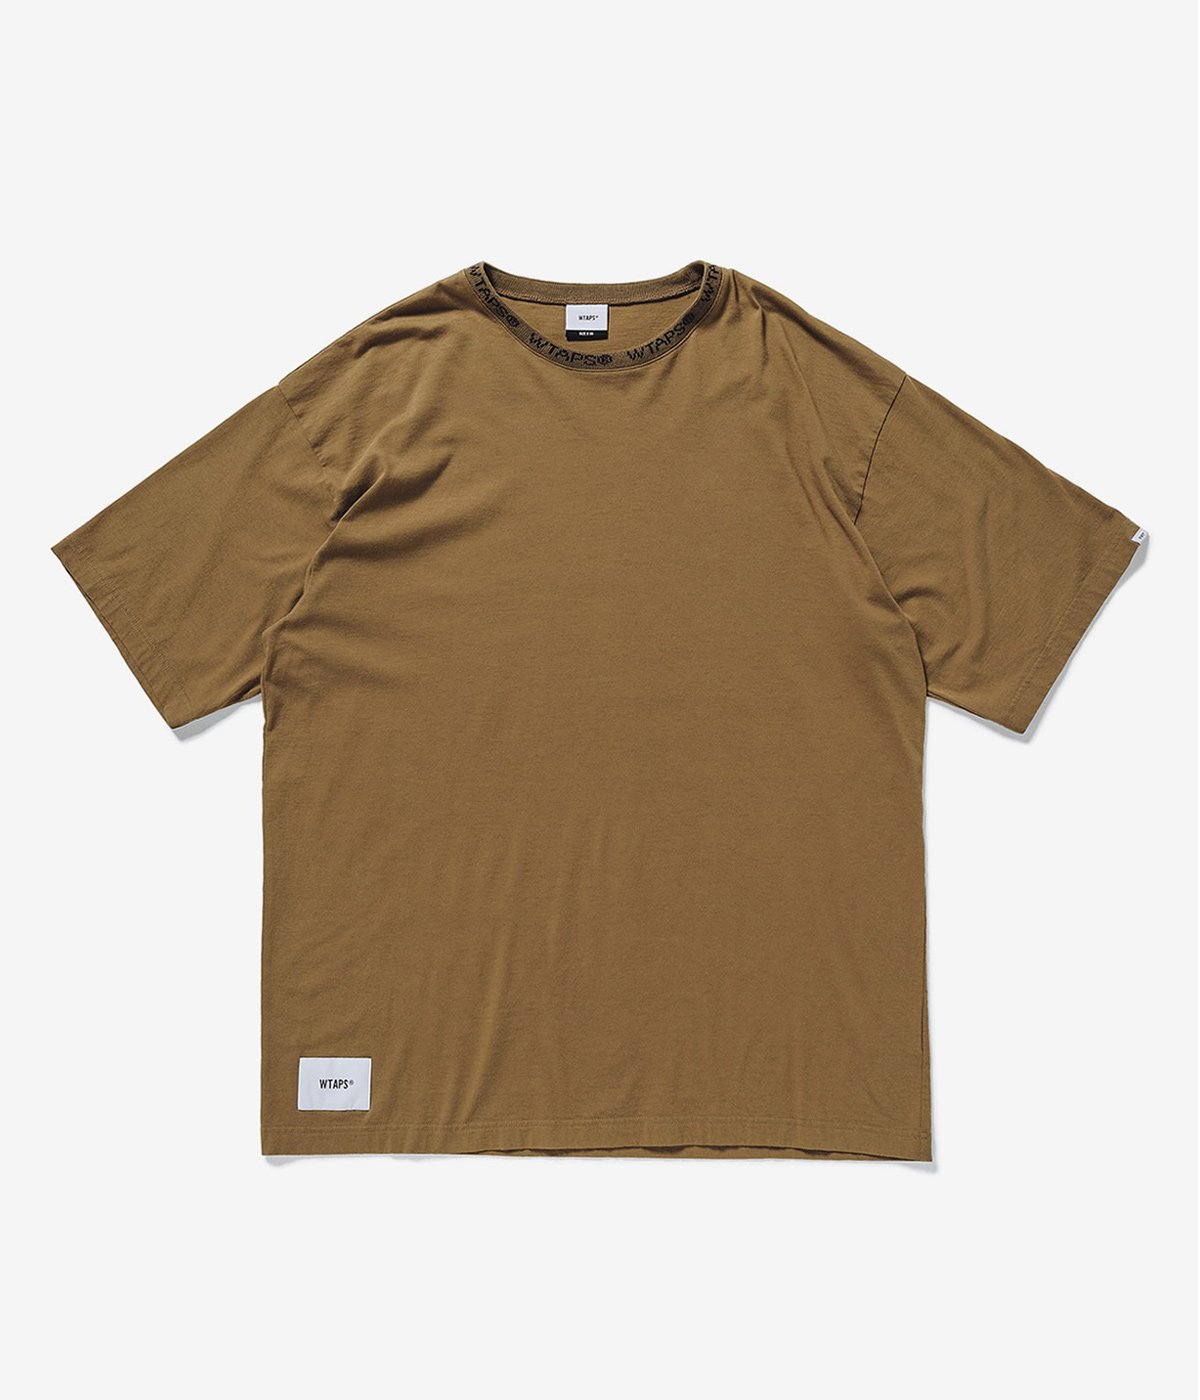 PYK. DESIGN SS 01 / TEE. COTTON